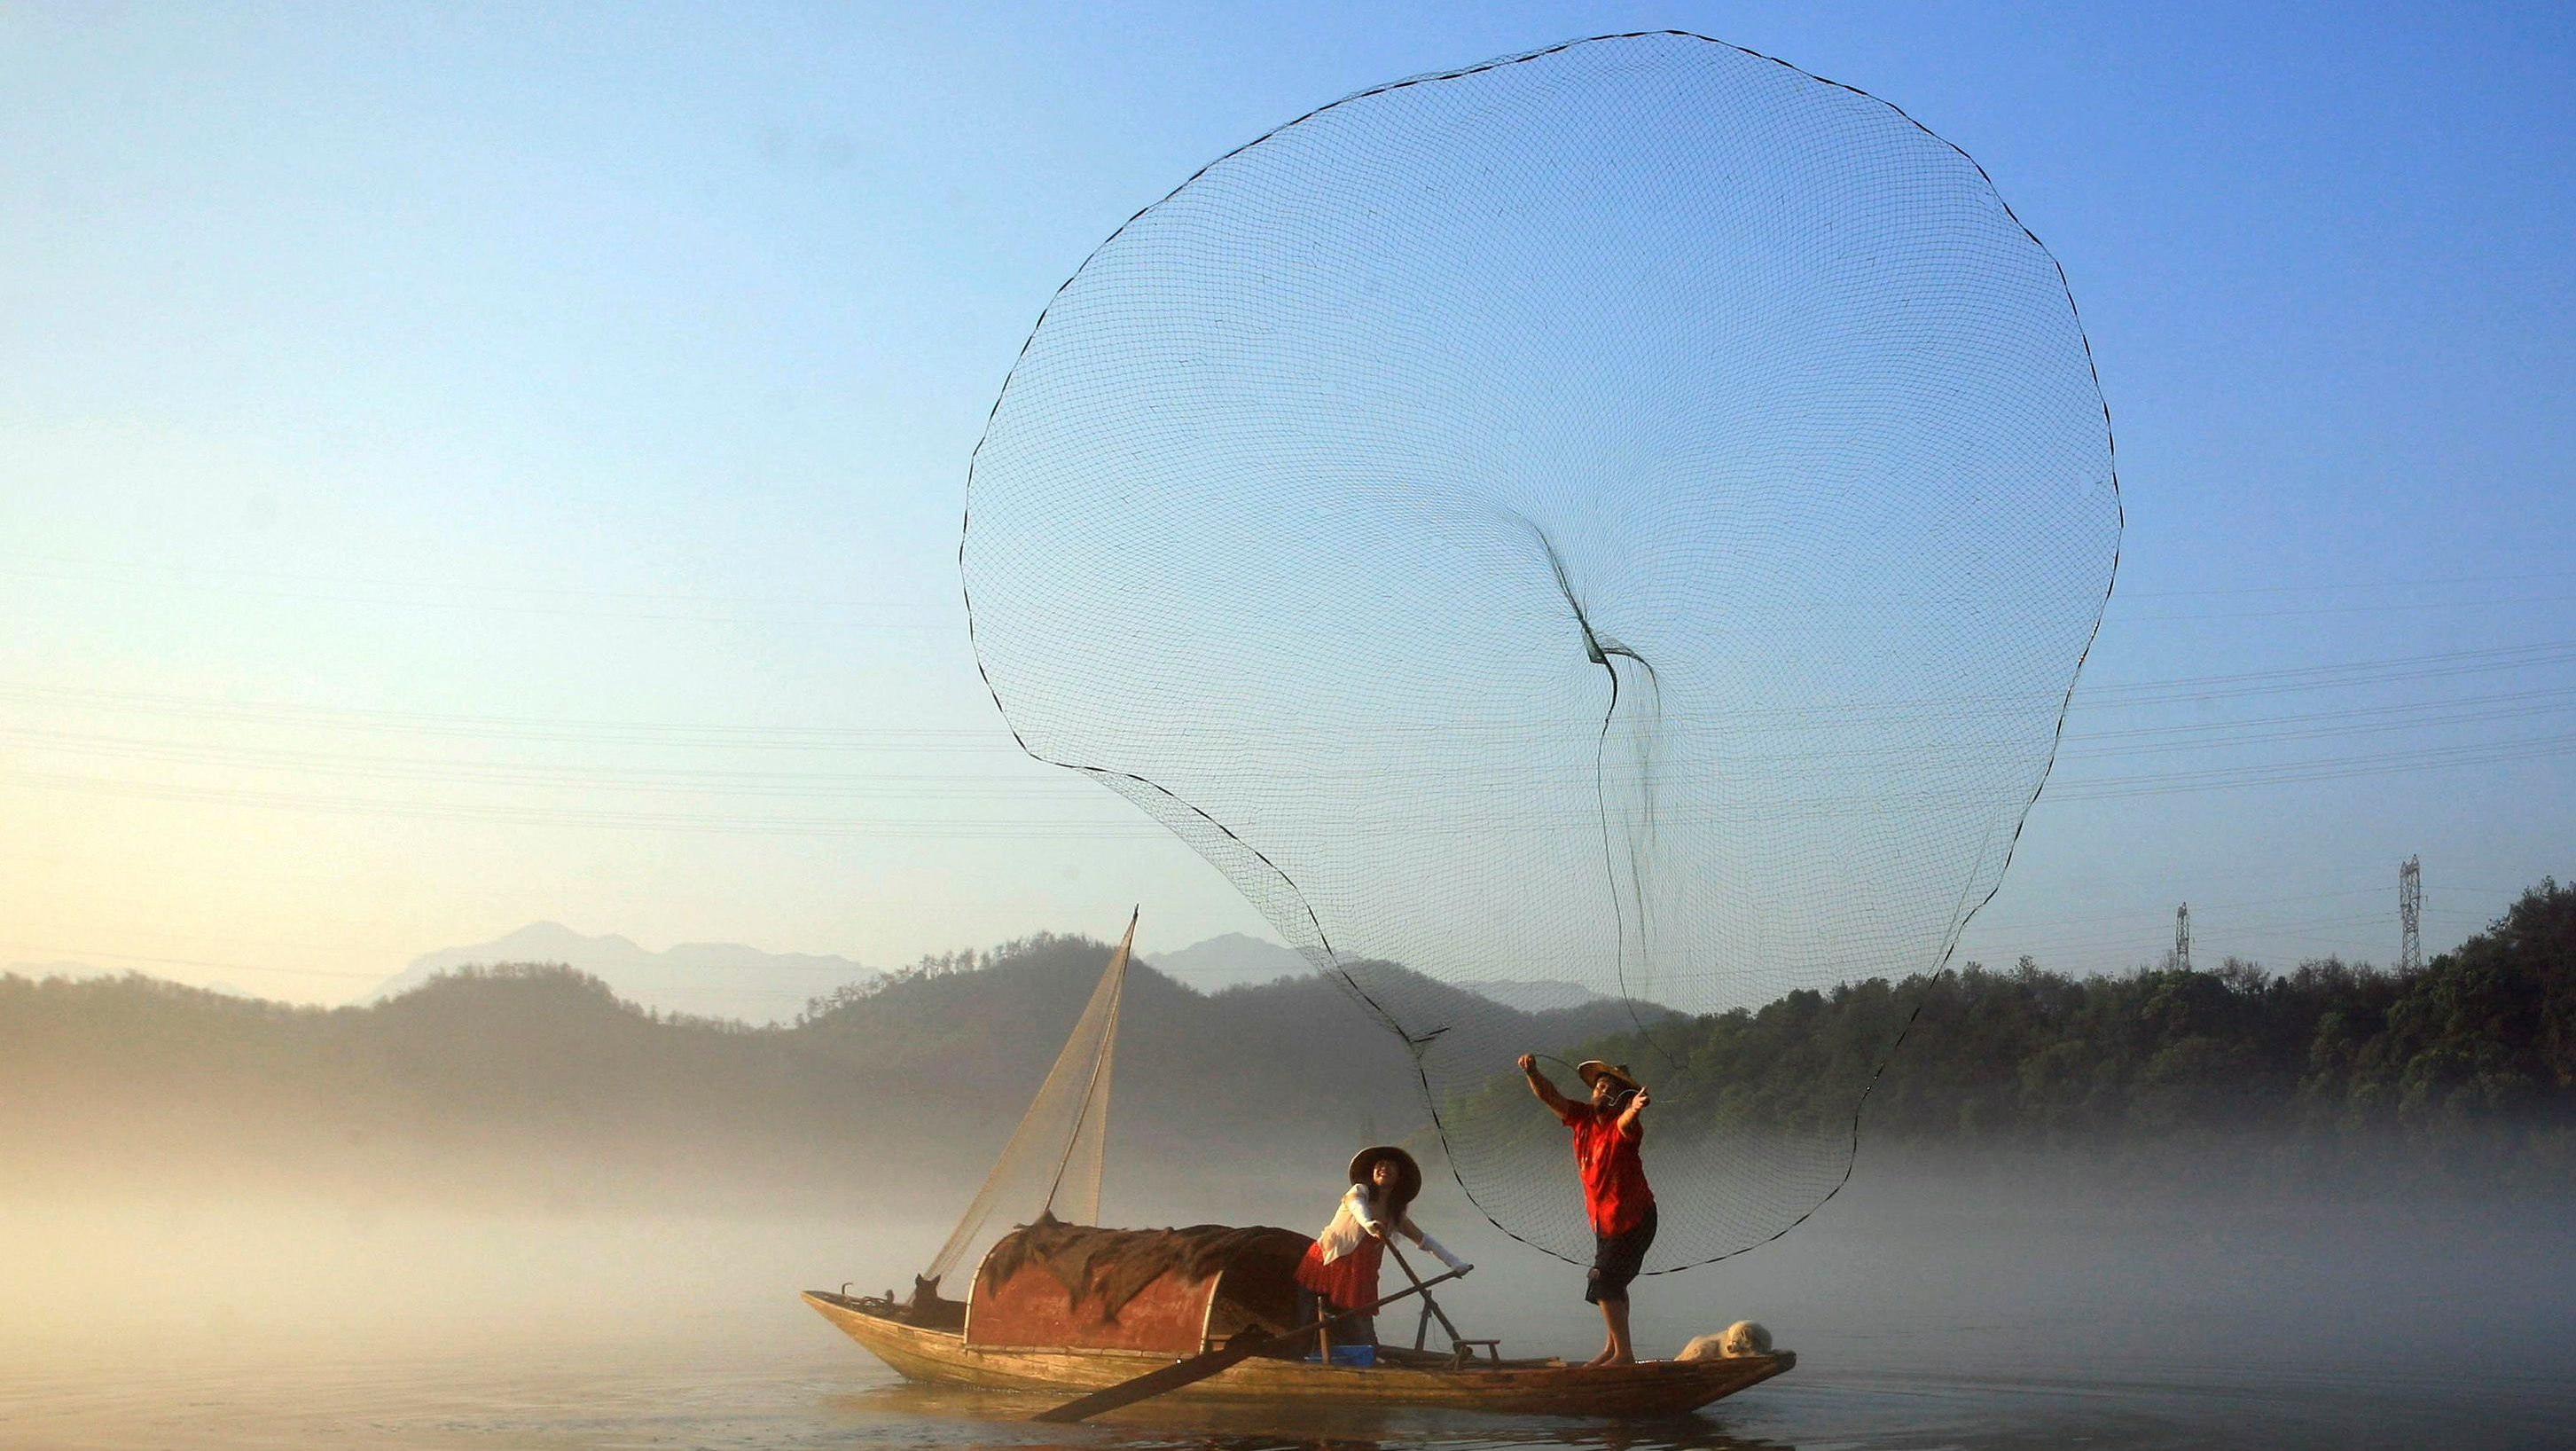 A fisherman casts his net to catch fish on Xin'an River in Jiande, Zhejiang province